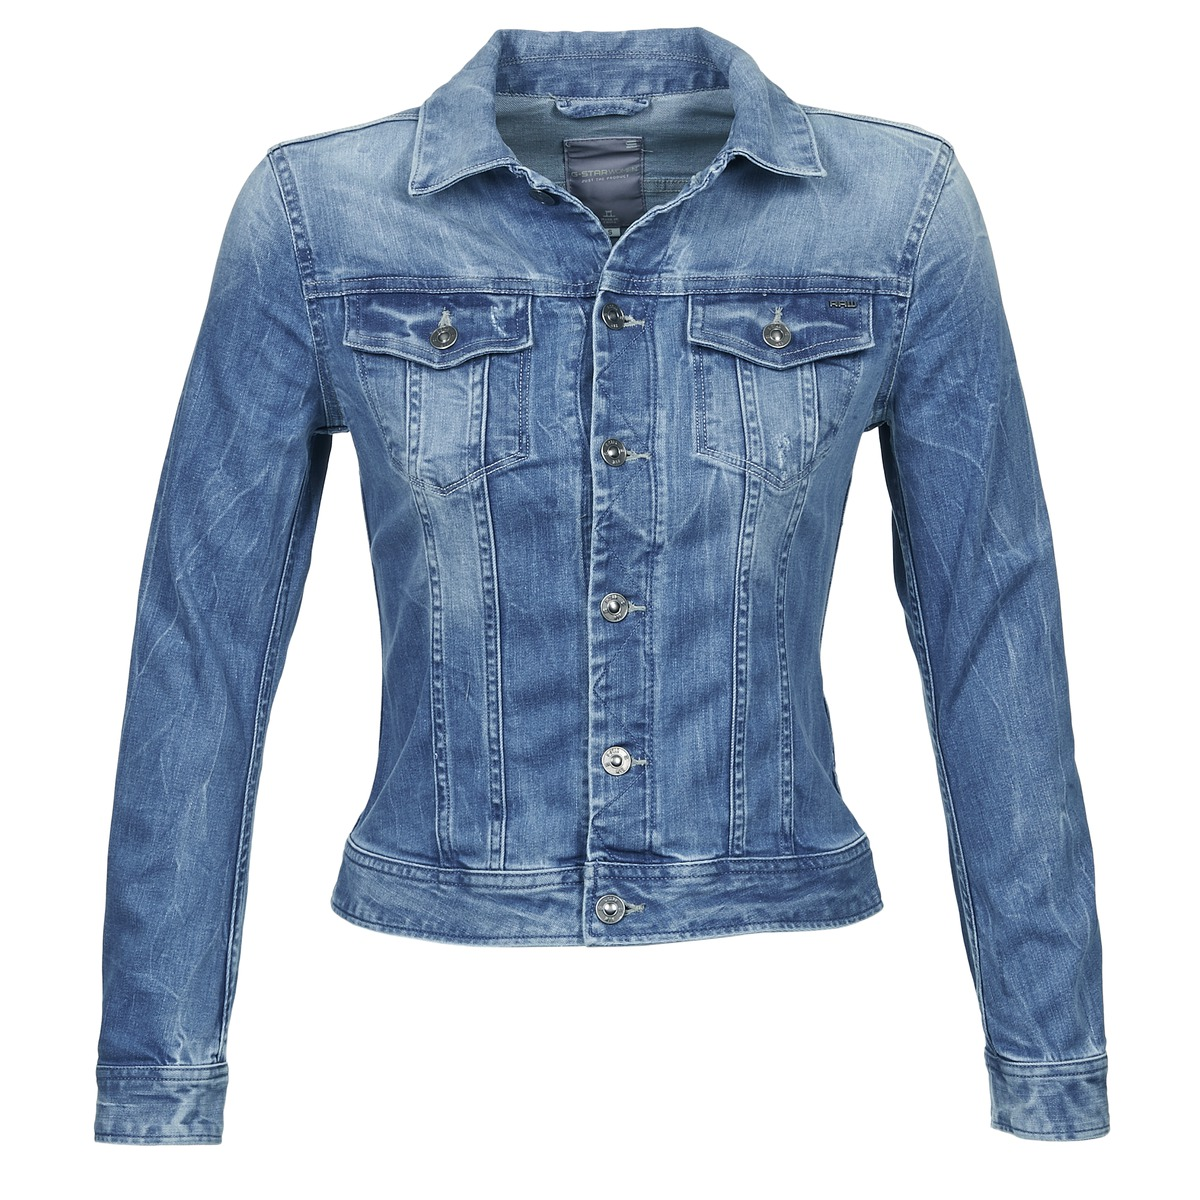 veste en jean g star raw wisk stretch denim bleu clair veste en jean femme spartoo ventes pas. Black Bedroom Furniture Sets. Home Design Ideas